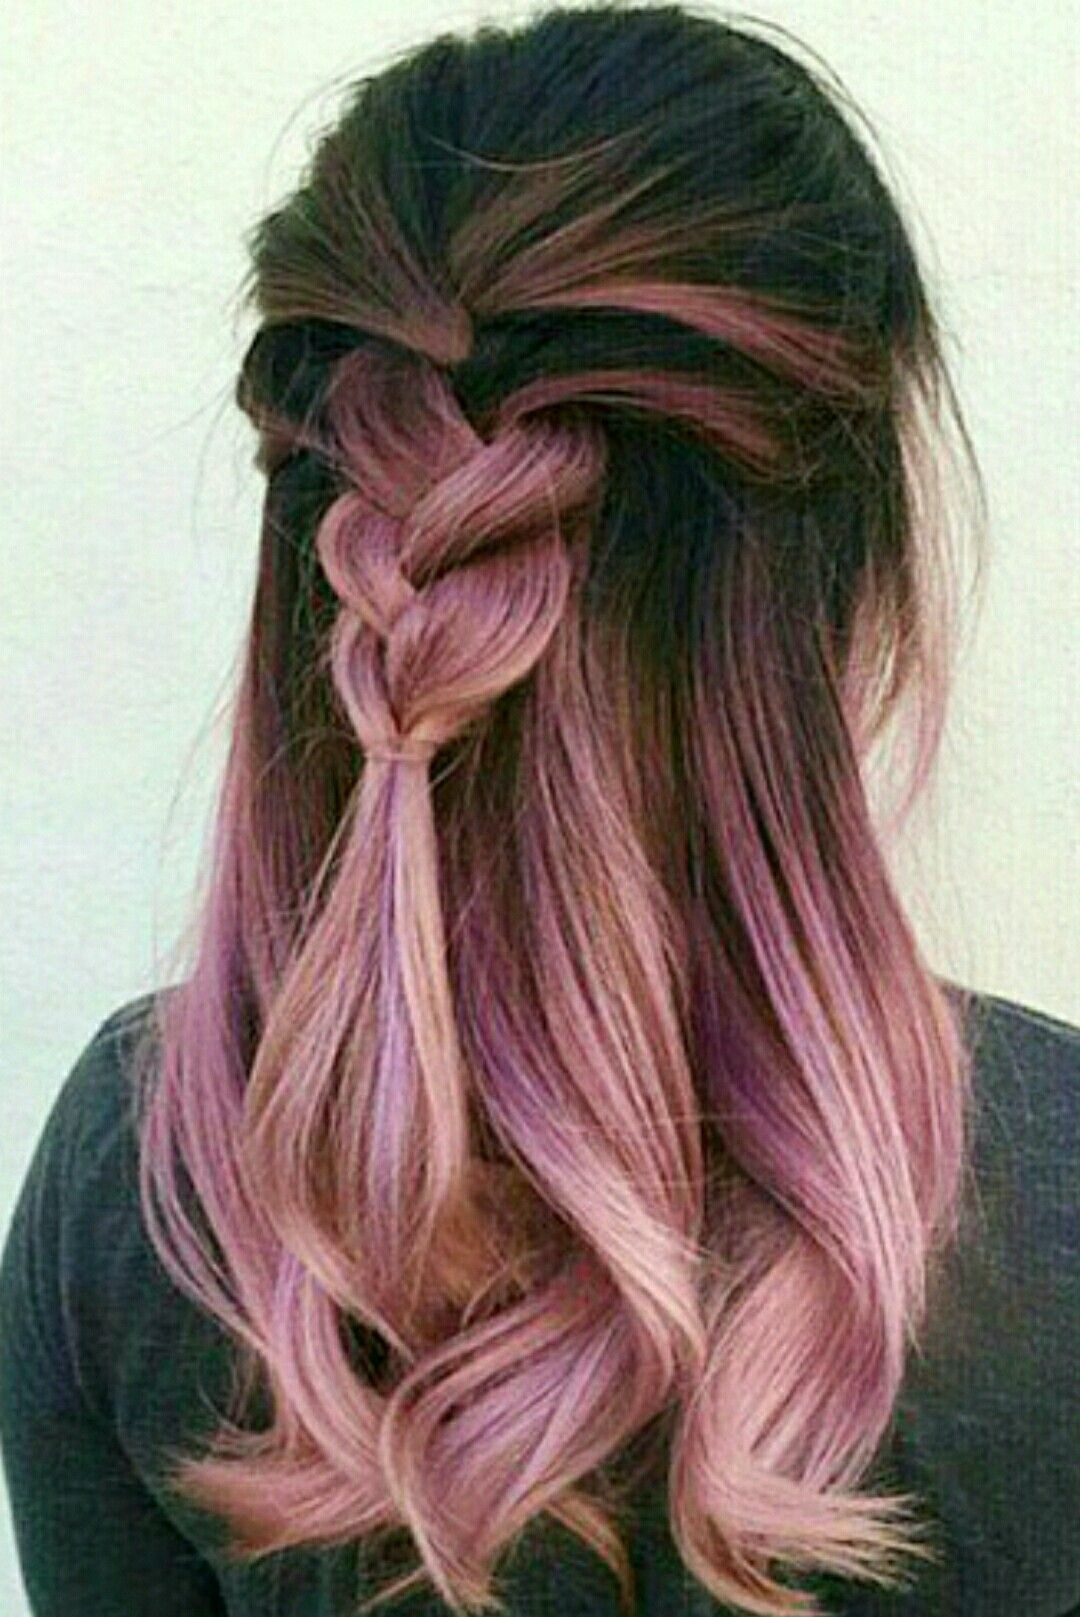 Pin de Jordan Joseph en braids, buns, and curls .. | Pinterest ...